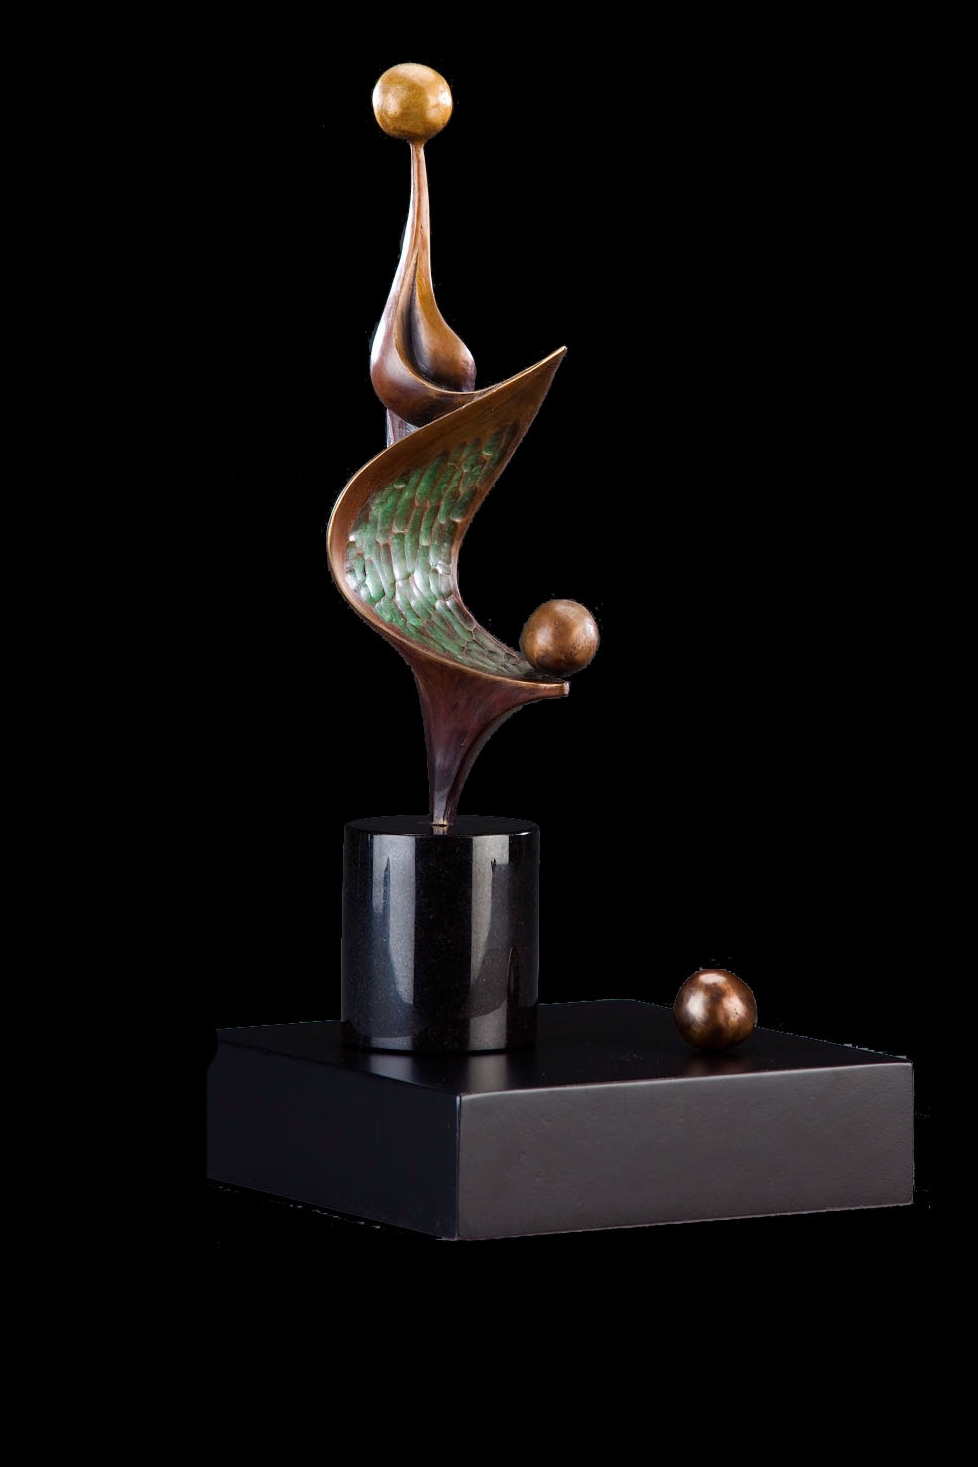 "Soulplay, Bronze, 21"" H x 9.5"" W x 9.5"" D (including the base), Edition of 35:  Creativity is born in expansion.  Playing with creativity is a way to expand one's soul.  Intentionally allowing the soul to play is a way to bring healthy, expansive energy into one's life"